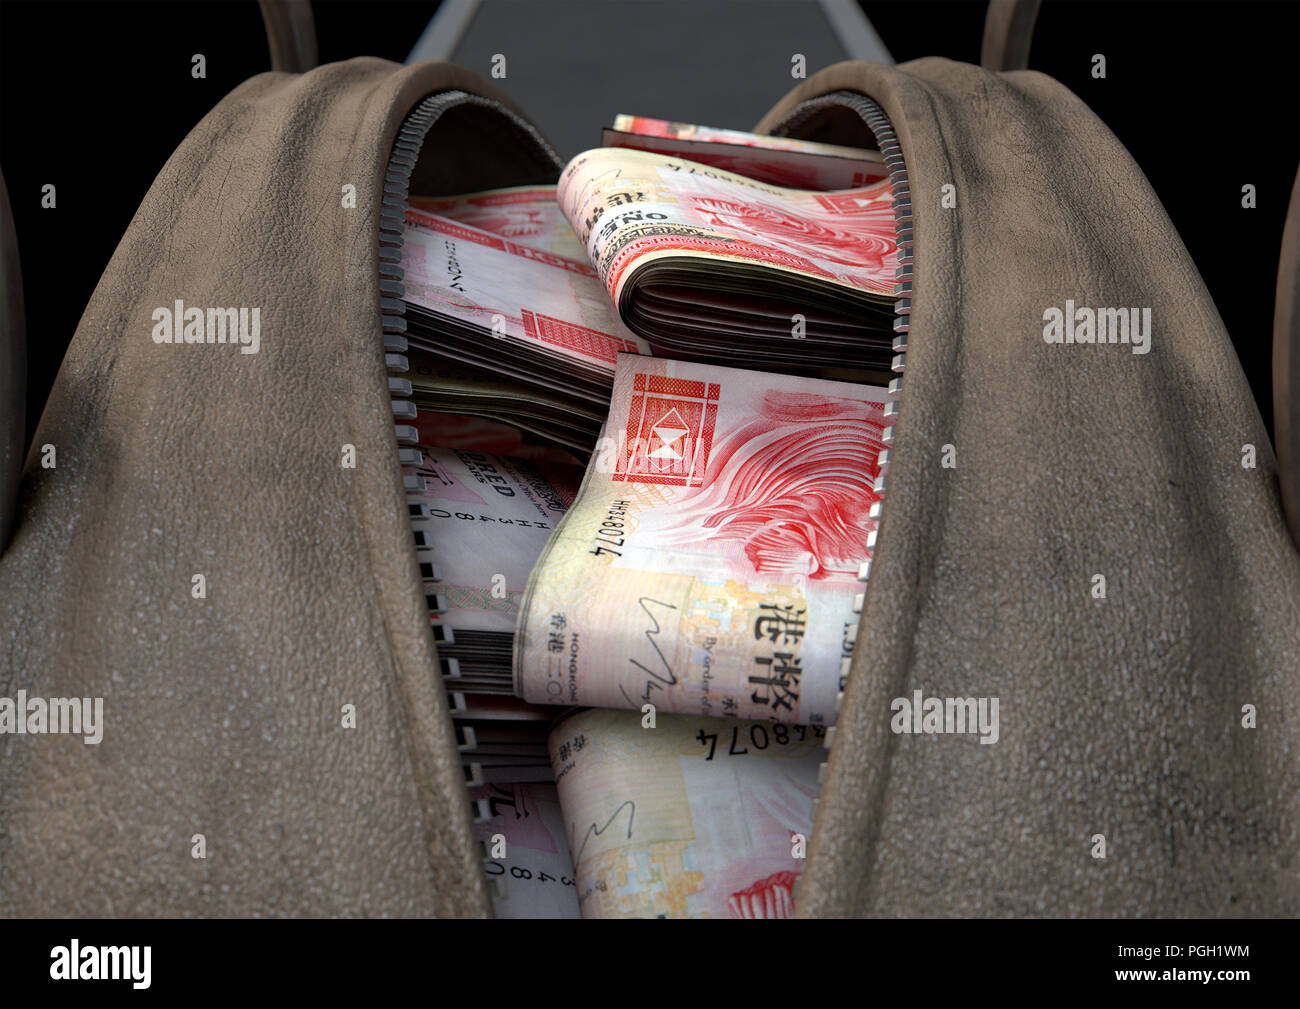 A smuggling concept depicting an open brown leather duffel bag revealing bundles of illicit rolled hong kong dollar notes - 3D render - Stock Image